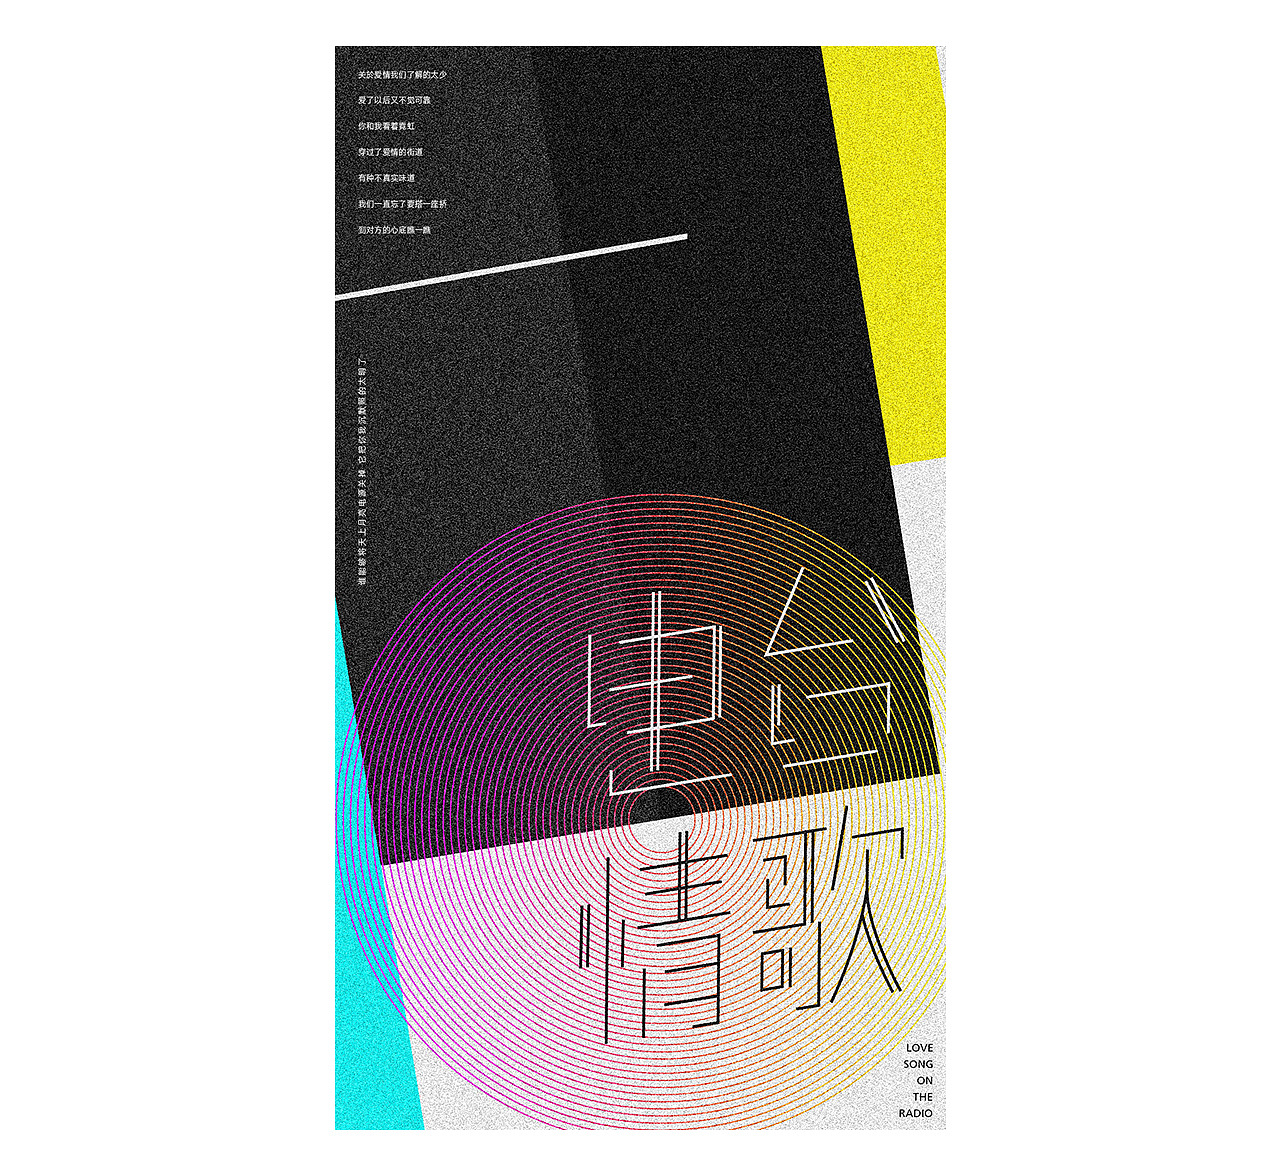 11P Chinese font promotion poster design - advanced concept